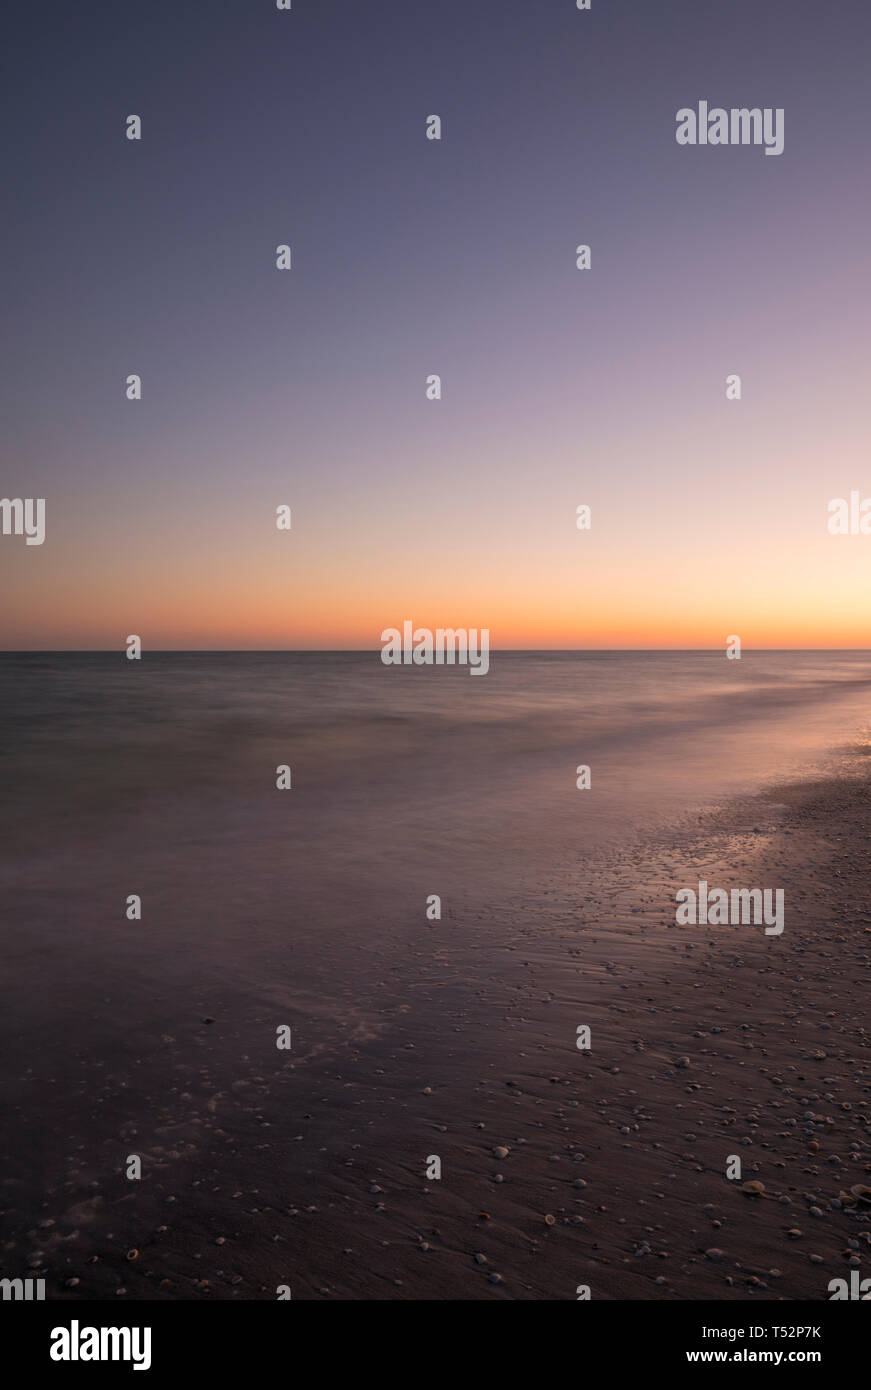 twilight afterglow over sky and water at dusk - Stock Image